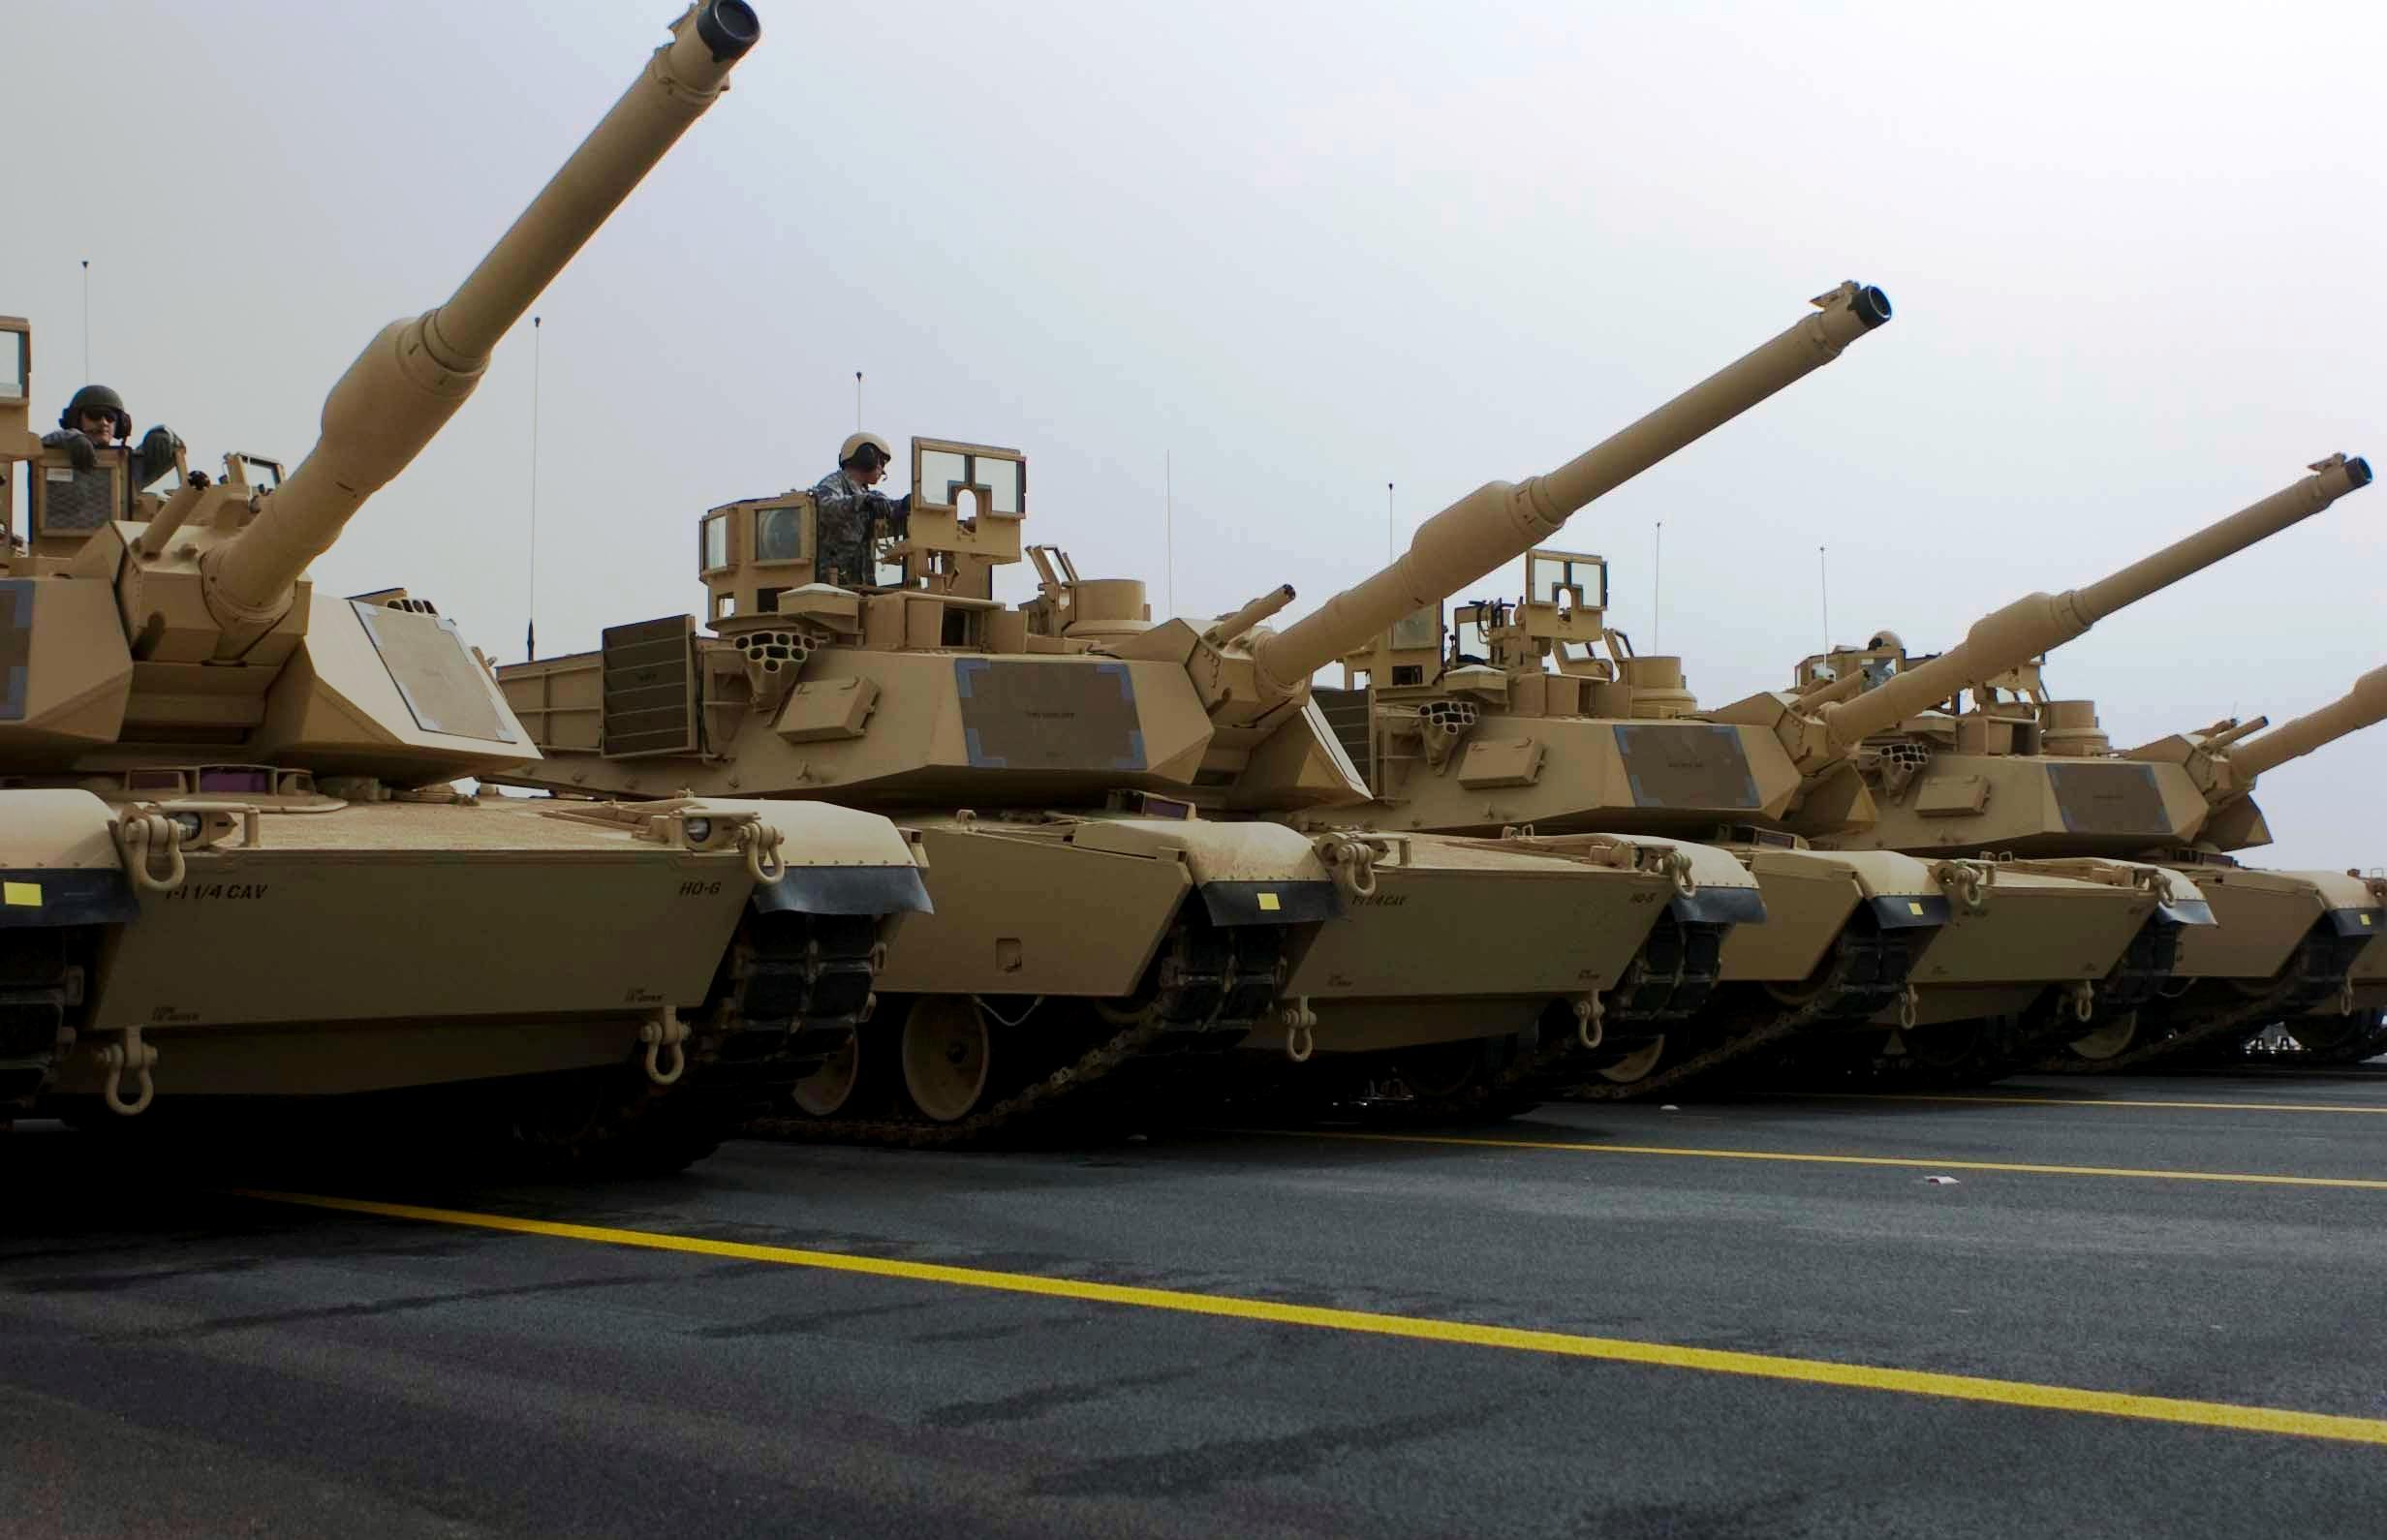 Description kuwaiti m1 abrams tanks